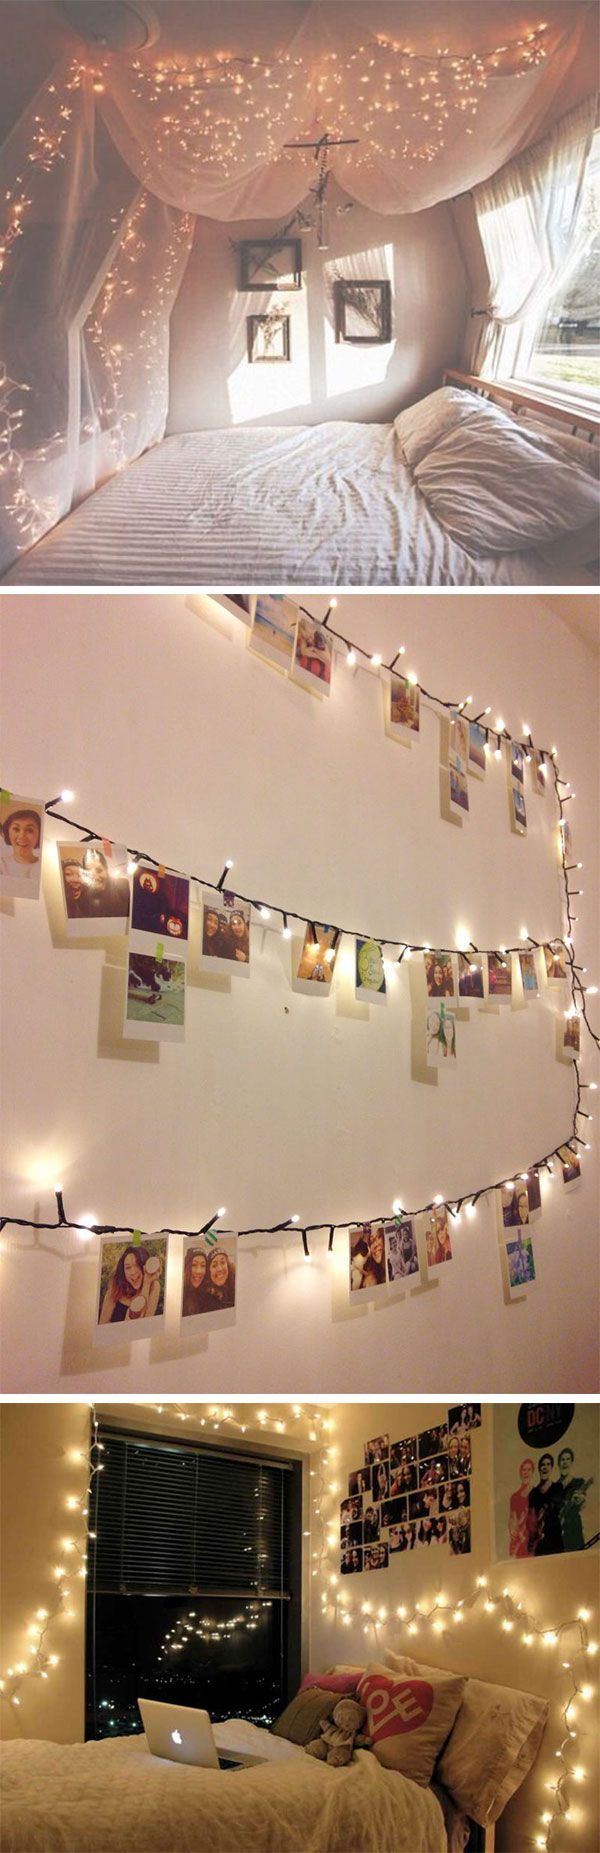 13 ways to use fairy lights and make your bedroom look magical